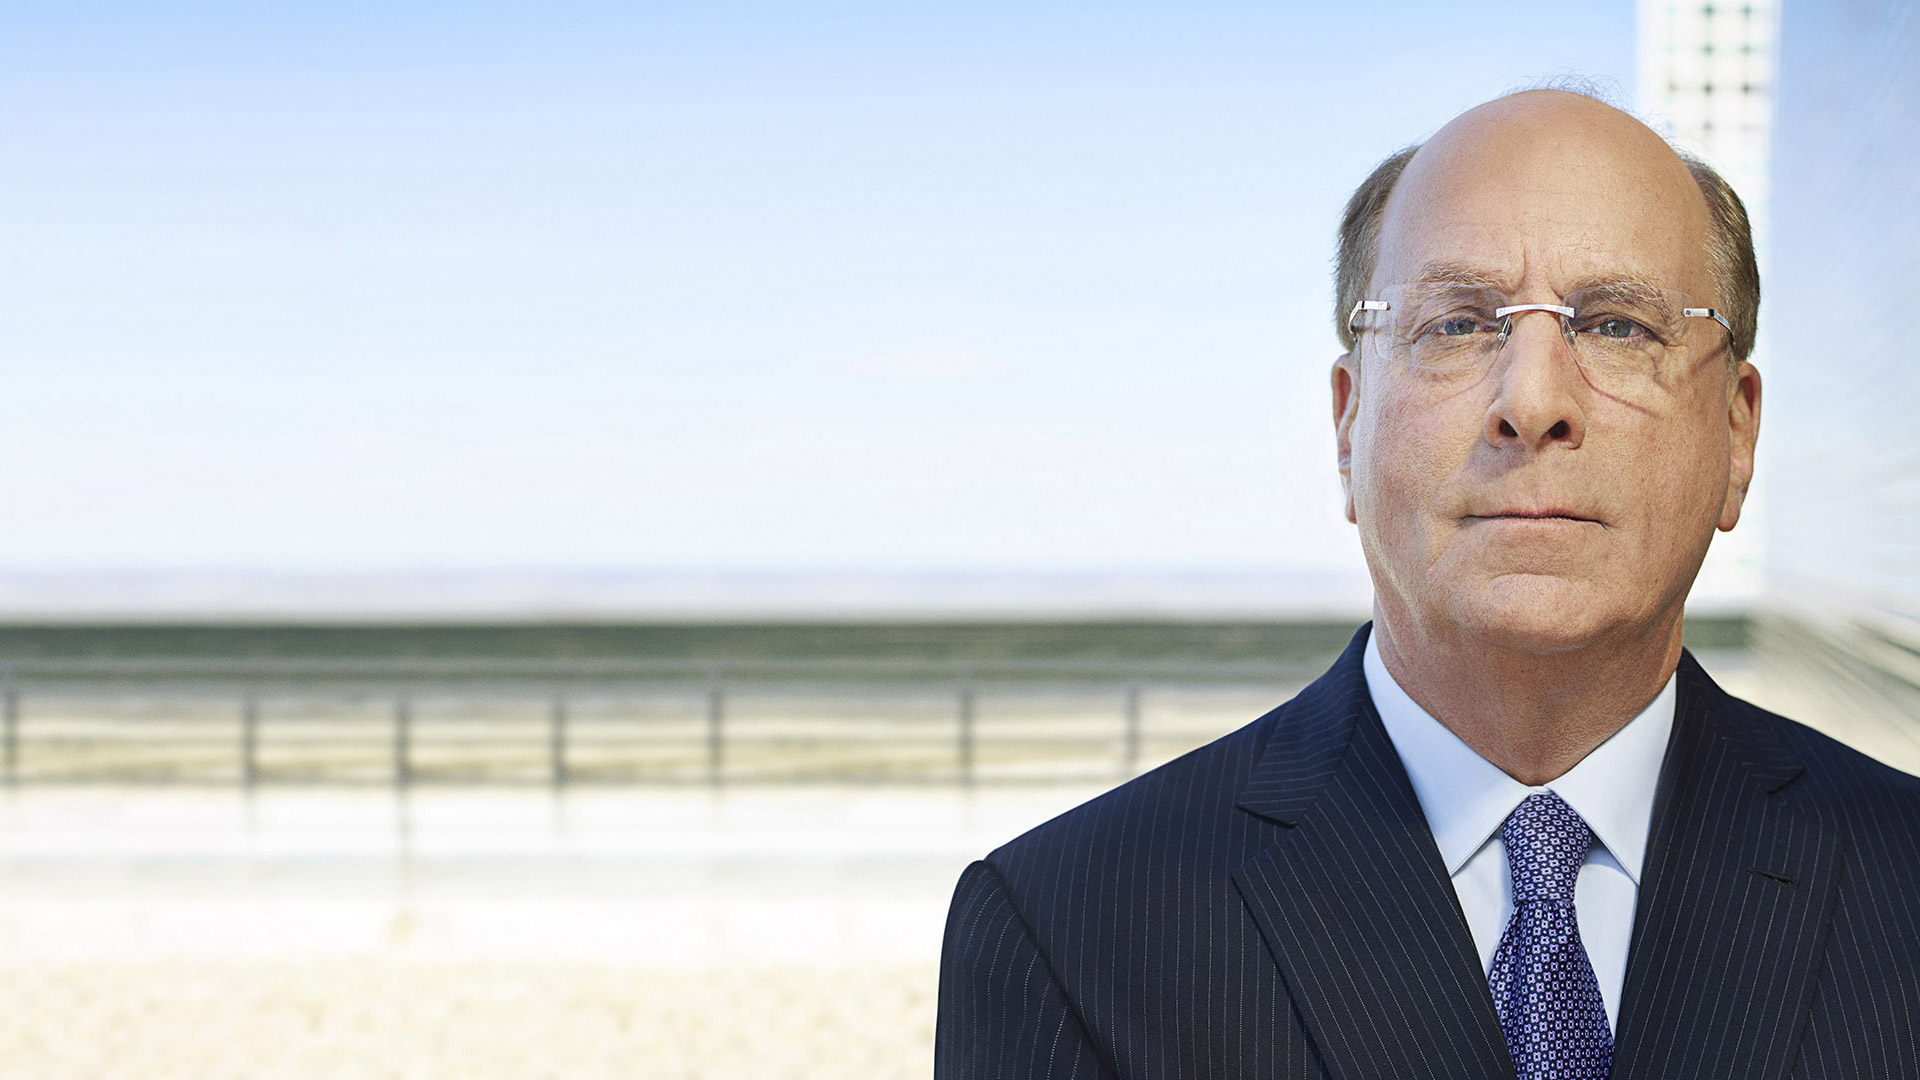 Larry Fink's 2021 letter to CEOs